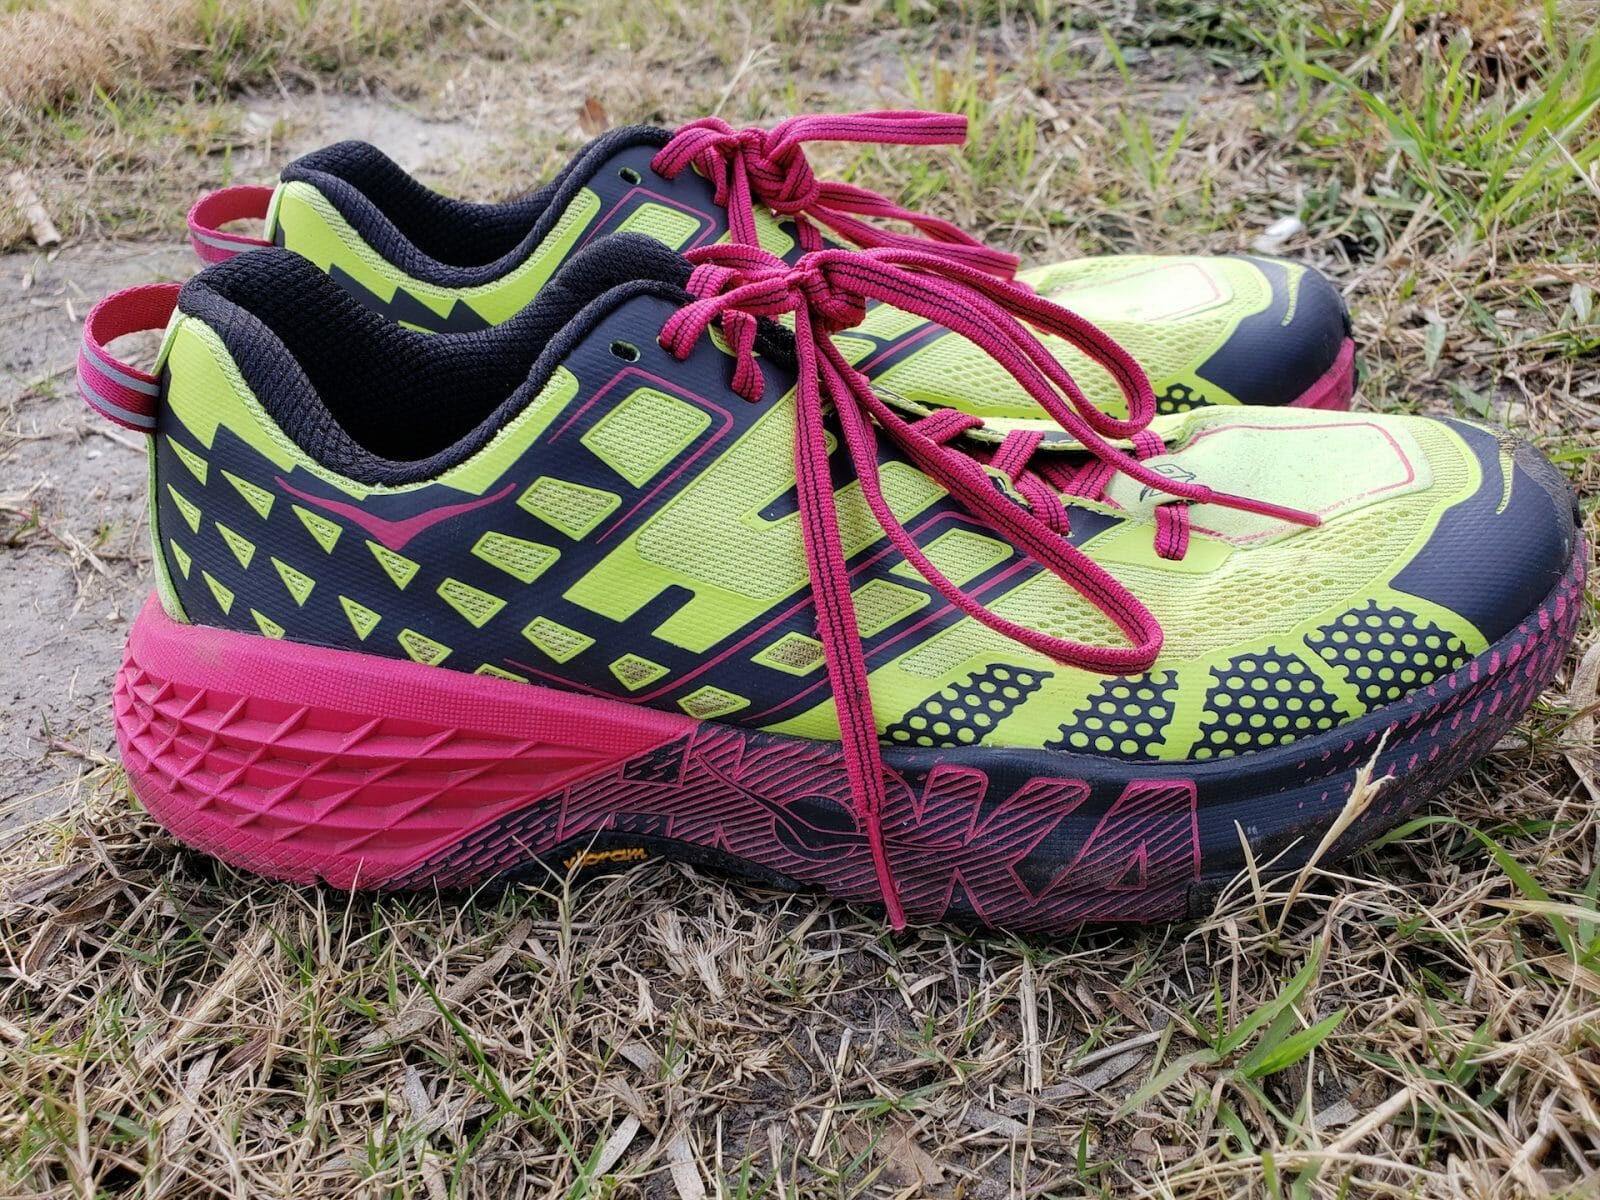 707e11571a1ad Hoka ONE ONE Speedgoat 2 Review